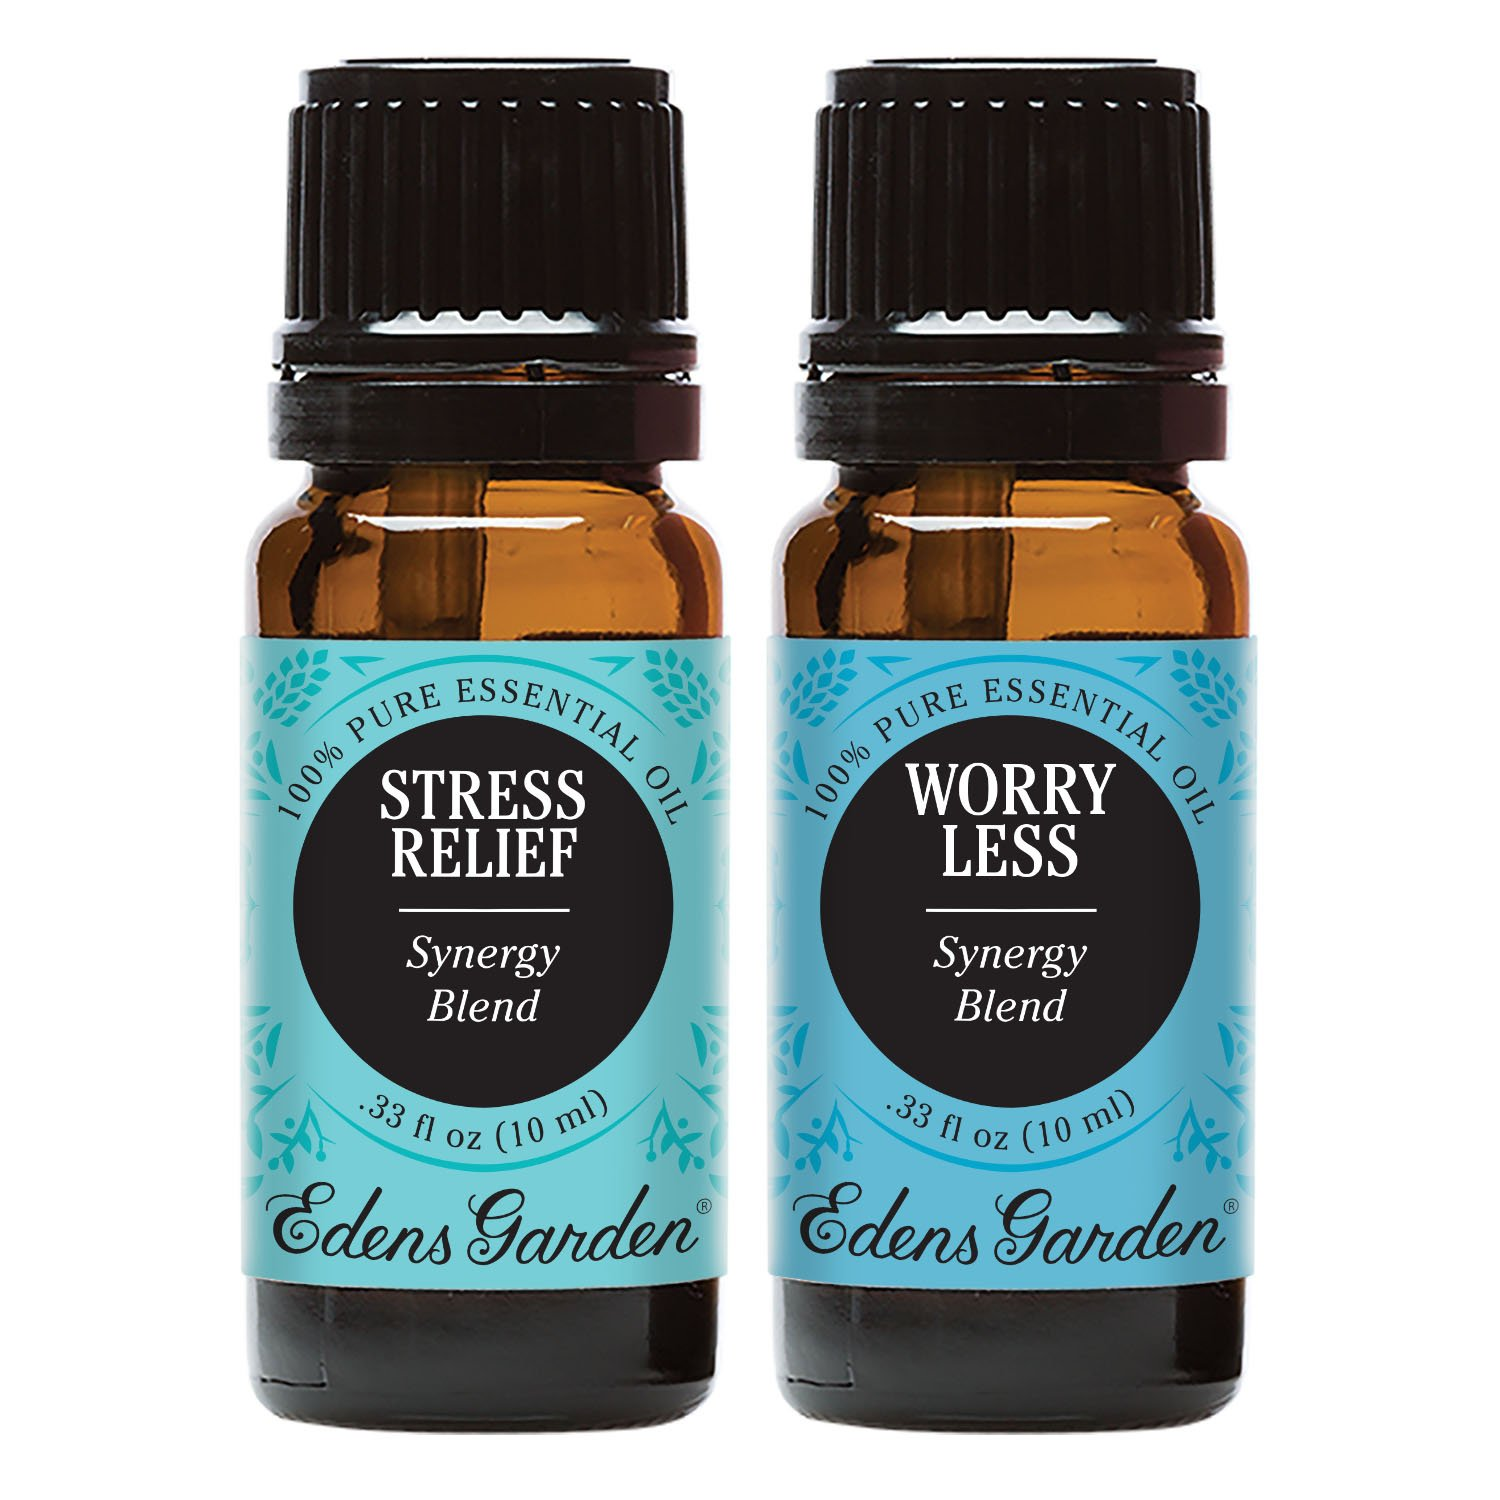 Stress Relief + Worry Less Value Pack 100% Pure Therapeutic Grade Essential Oil by Edens Garden 2 Set 10 ml